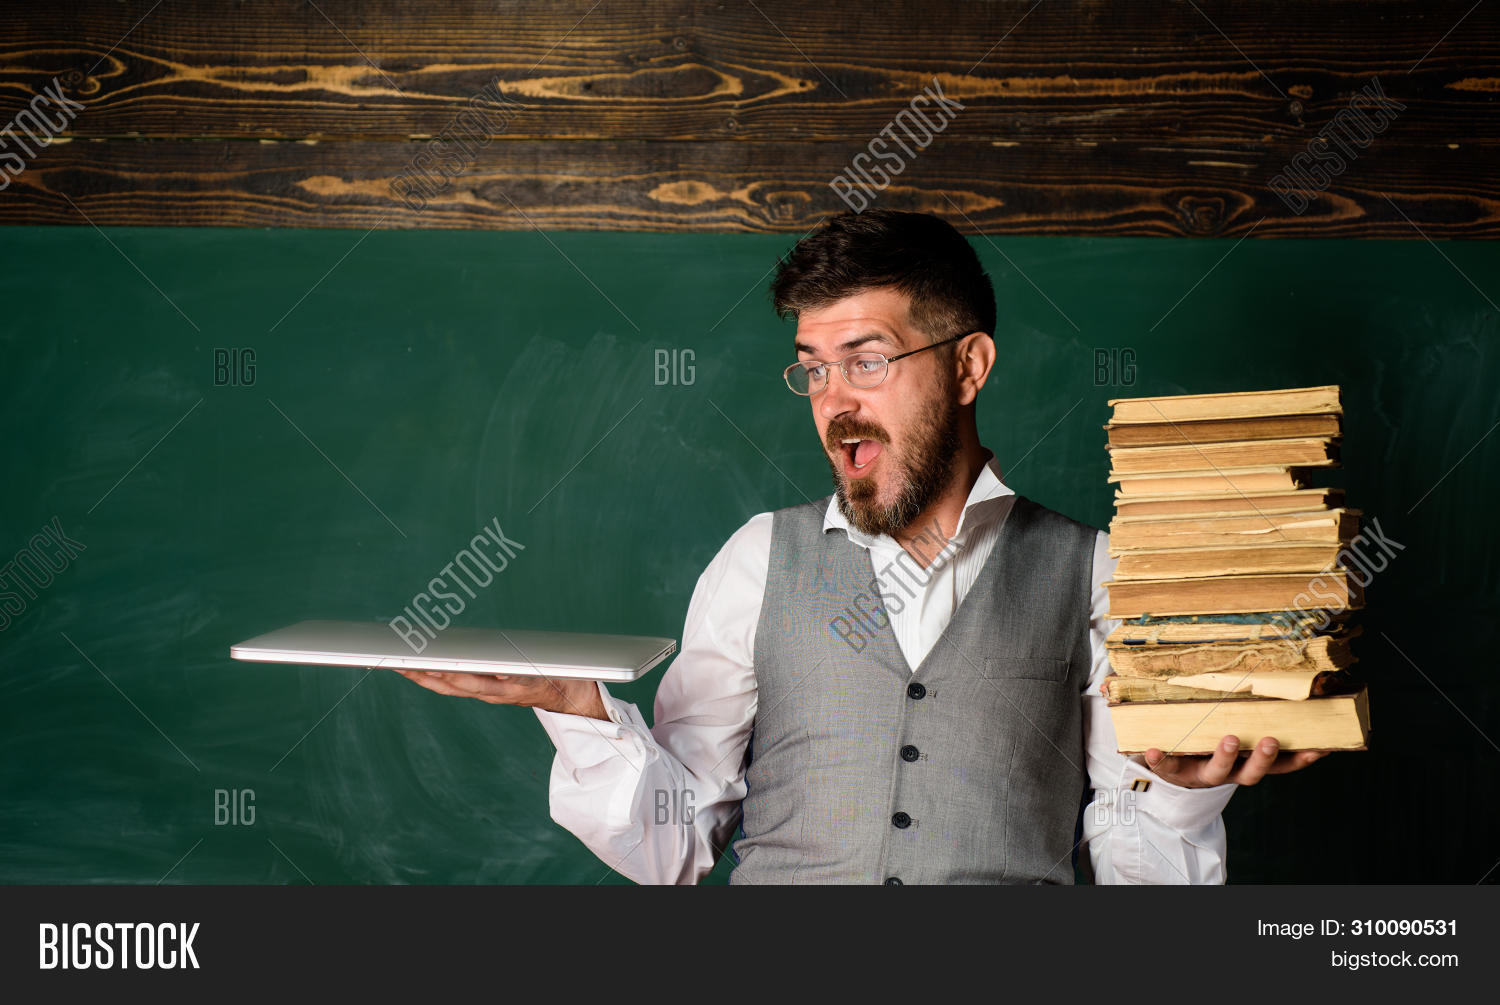 advantage,against,alternative,back,background,bearded,benefit,book,business,caucasian,choose,college,communication,computer,concept,digital,director,ebook,education,electronic,handsome,hipster,ideas,information,intelligent,internet,knowledge,laptop,learn,learning,library,male,man,notebook,office,online,outdated,paper,professor,read,right,school,schooling,student,studying,teacher,technologies,traditional,writing